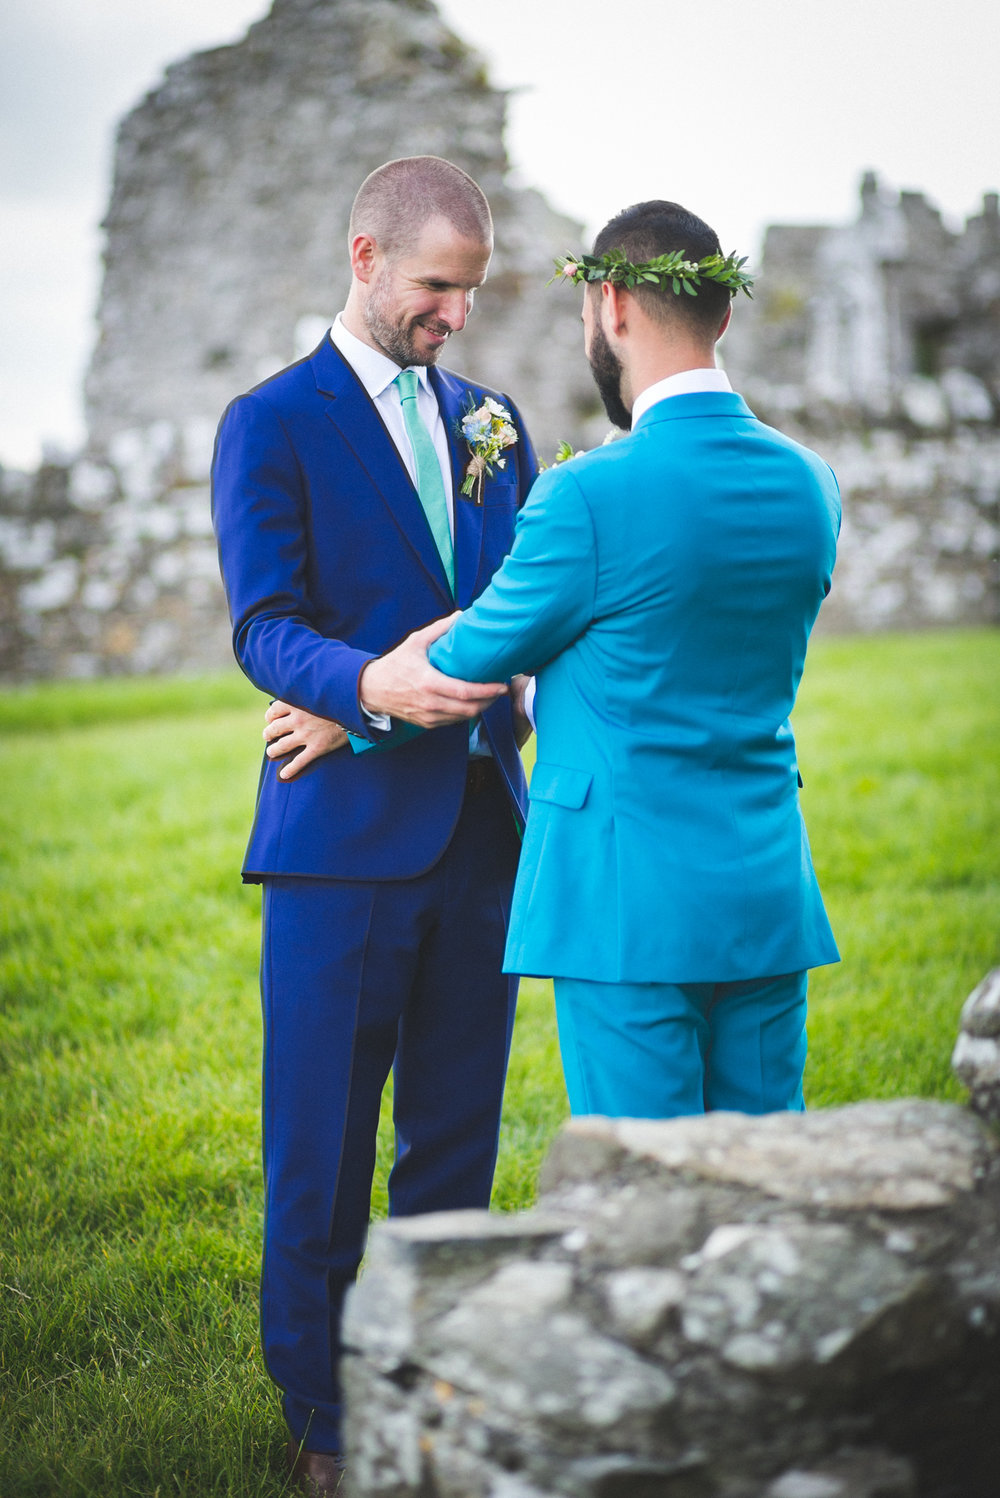 Gay weddings Ireland Millhouse-48.jpg